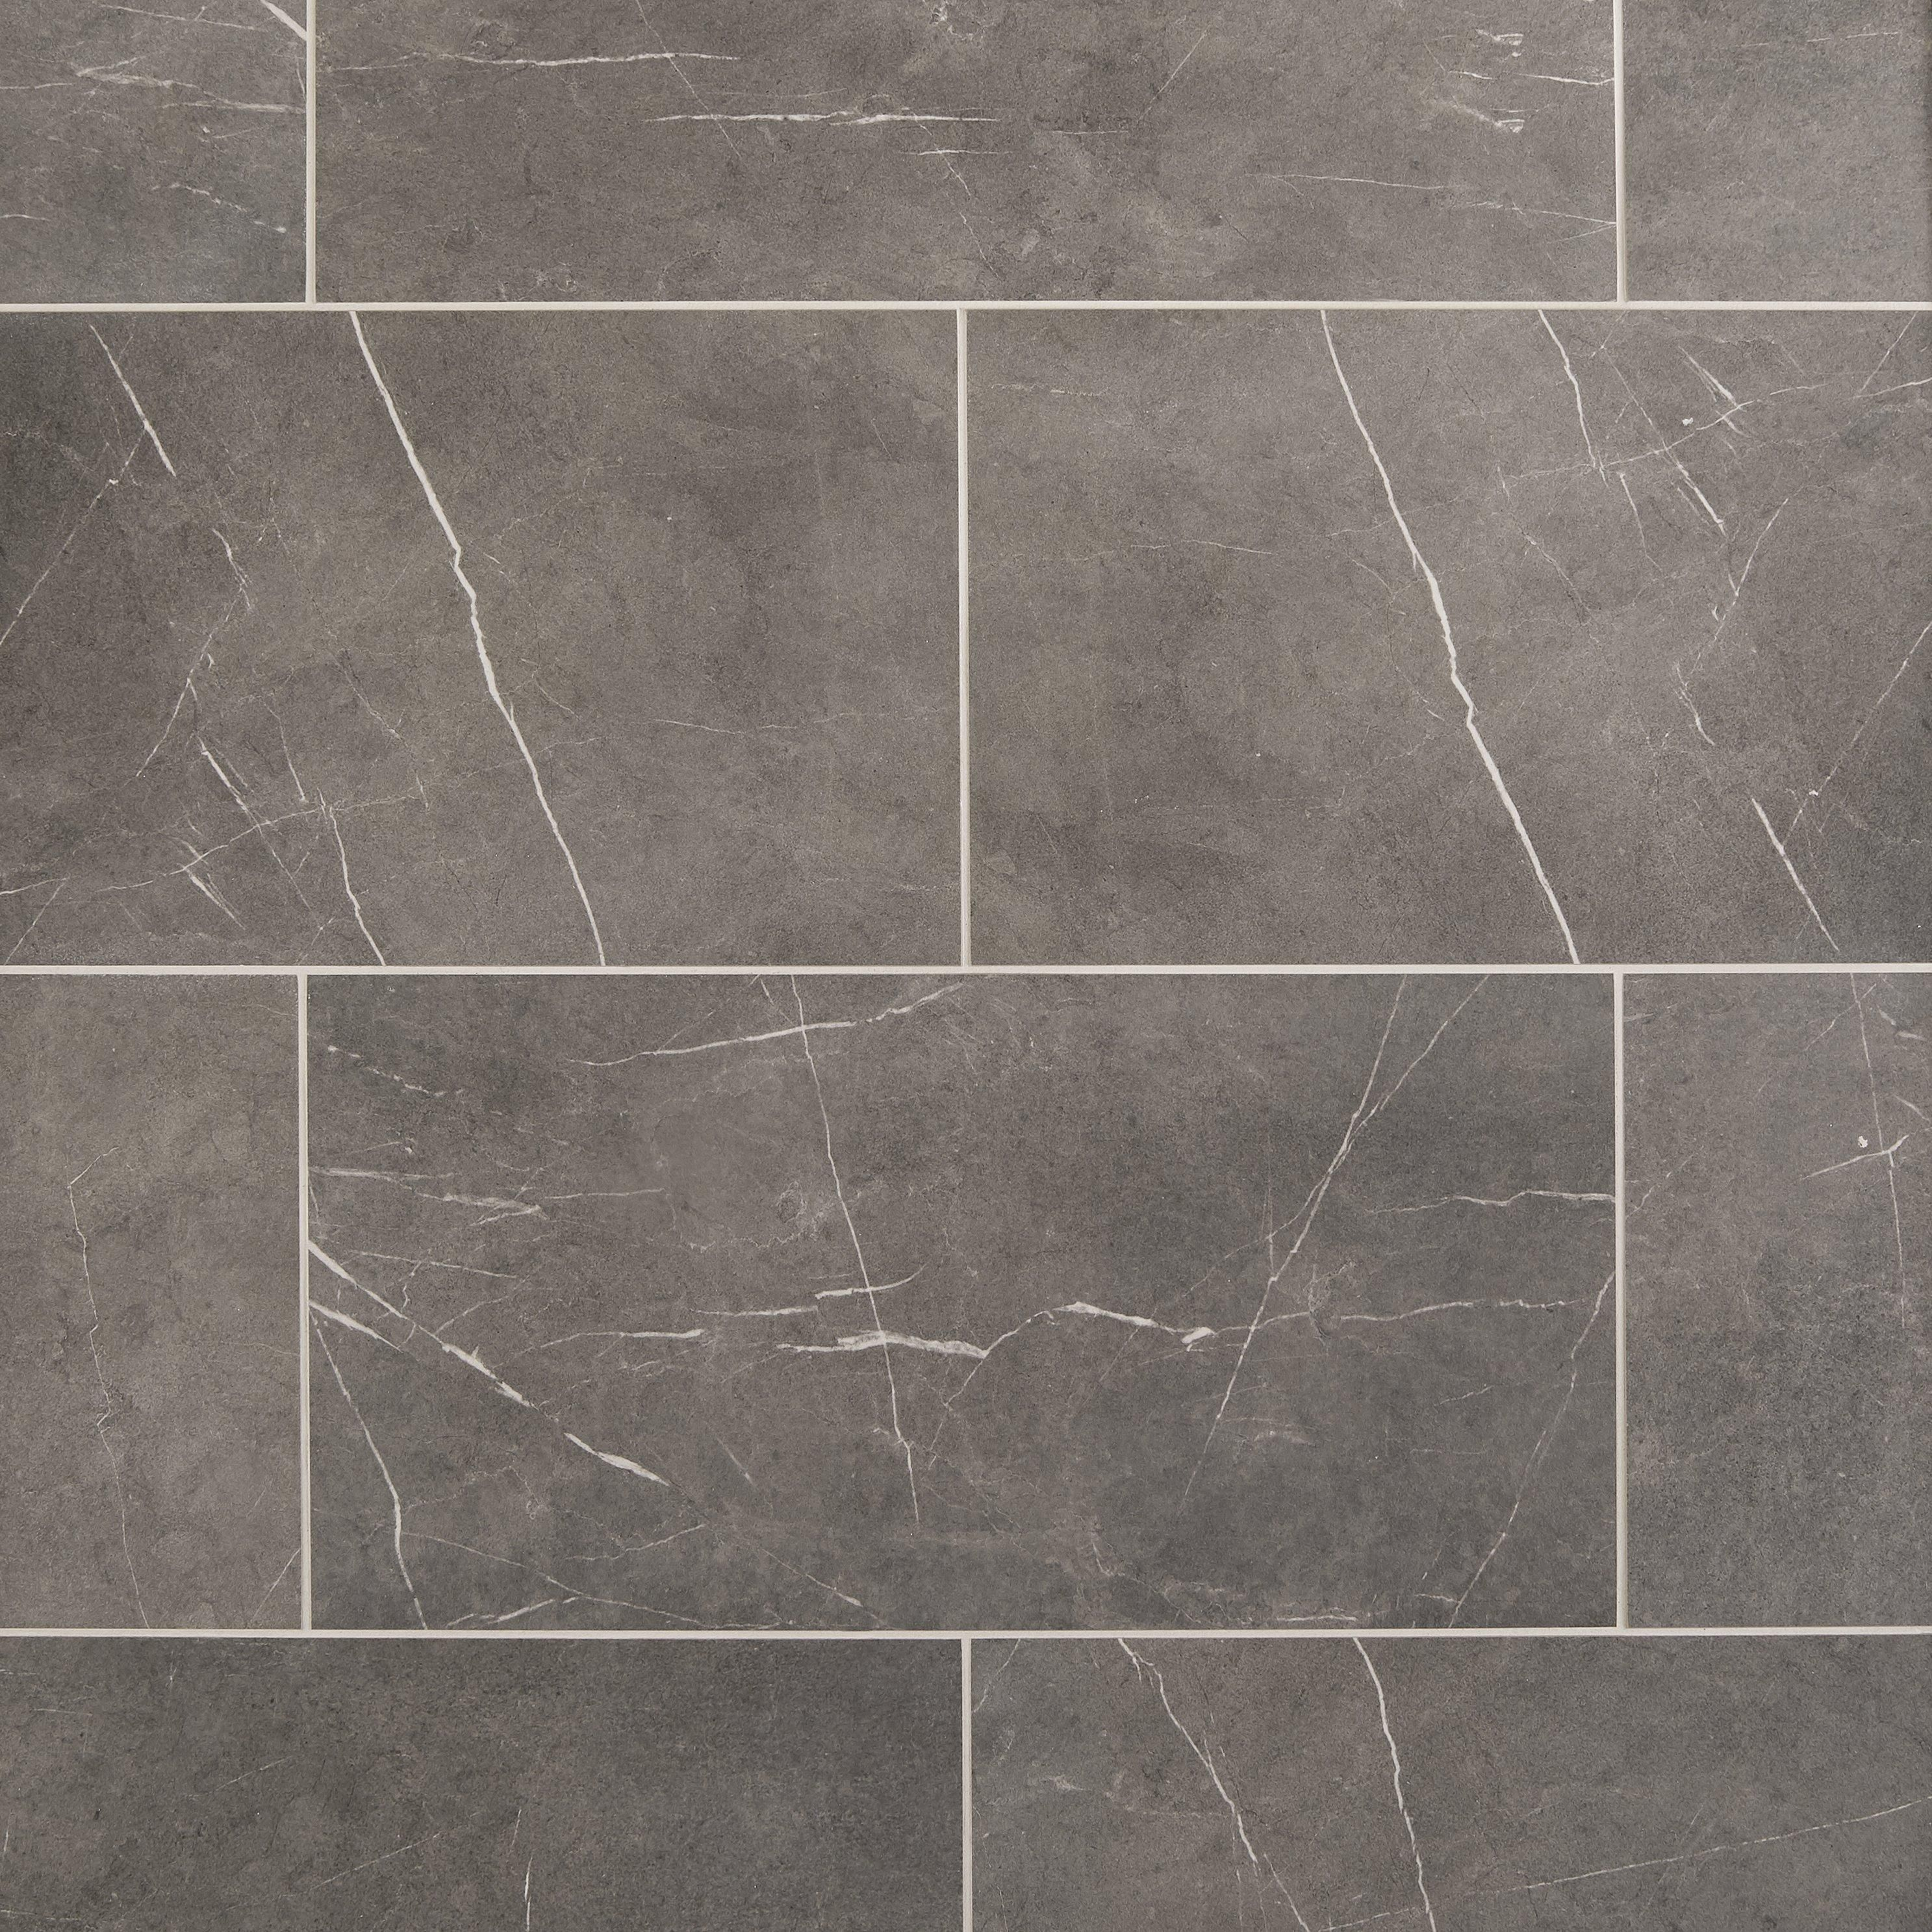 Avon Gray Porcelain Tile In 2020 Gray Porcelain Tile Stone Look Tile Grey Polished Porcelain Tiles